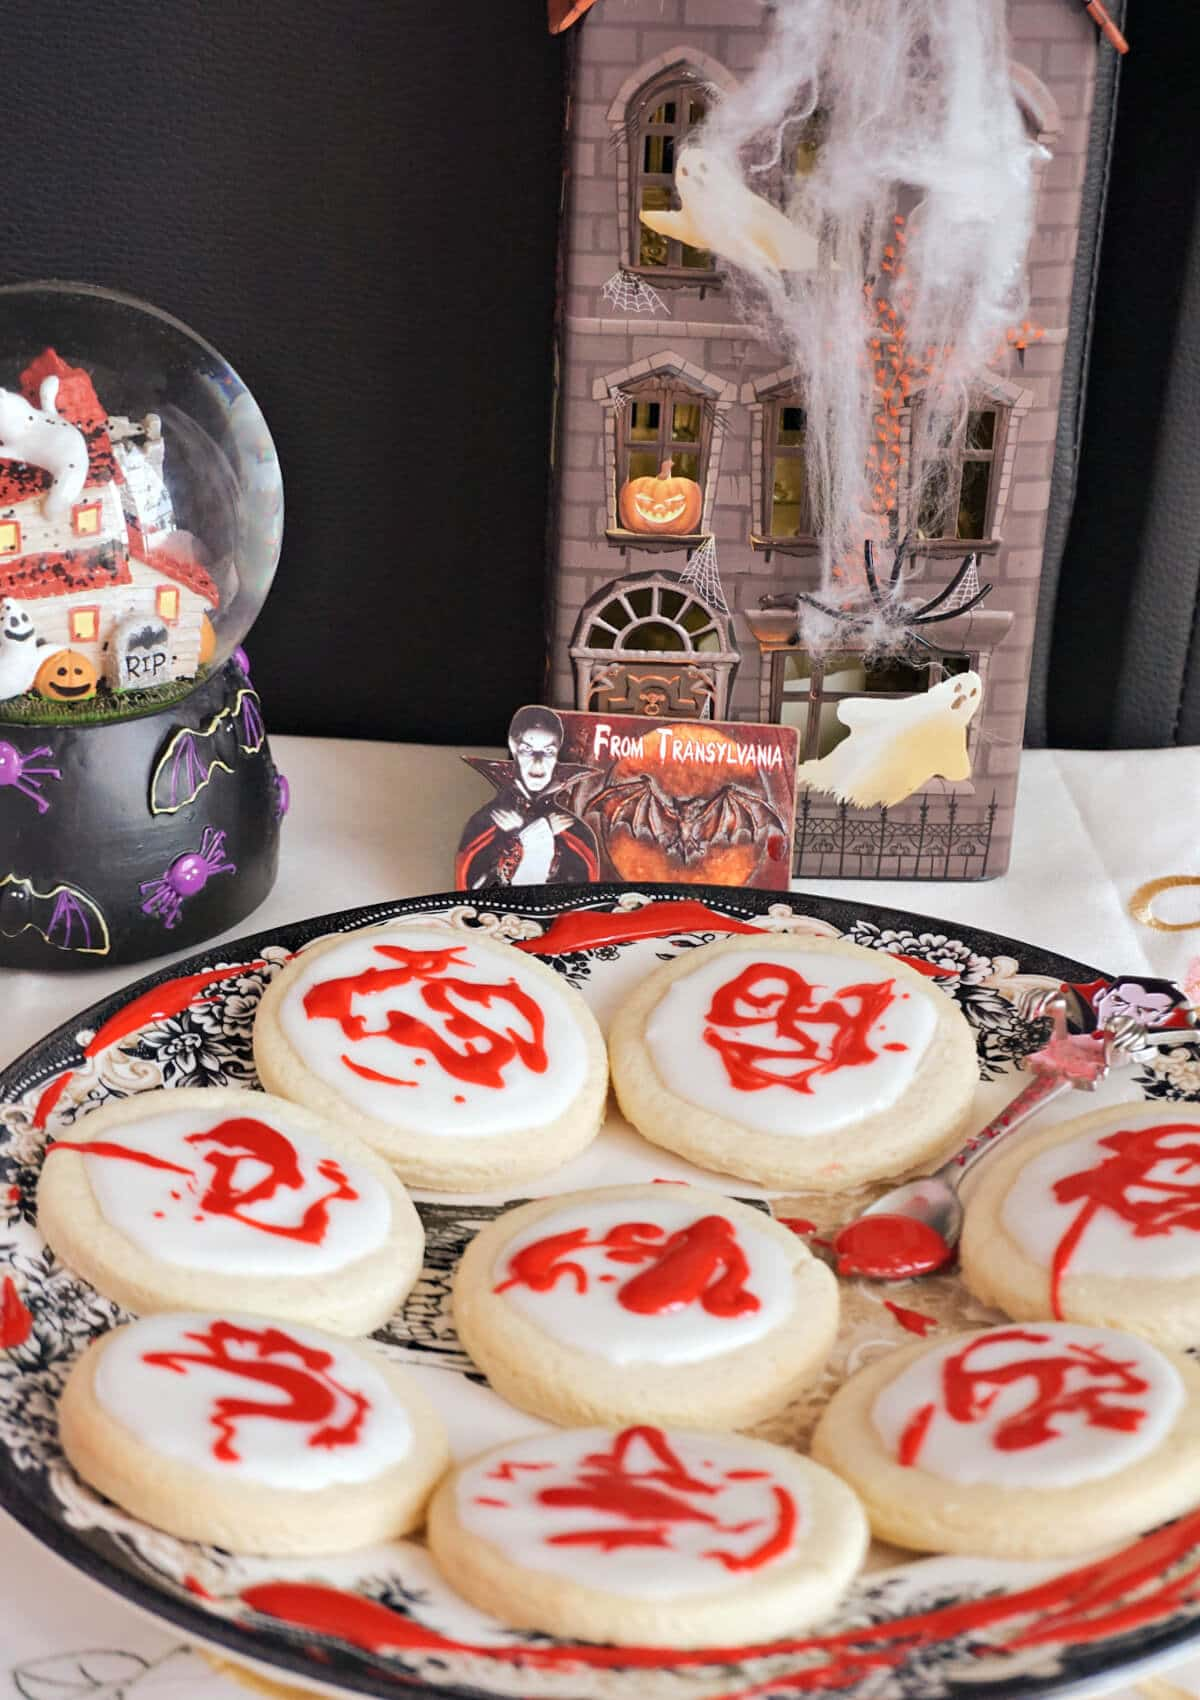 A plate with 8 halloween cookies and decorations around